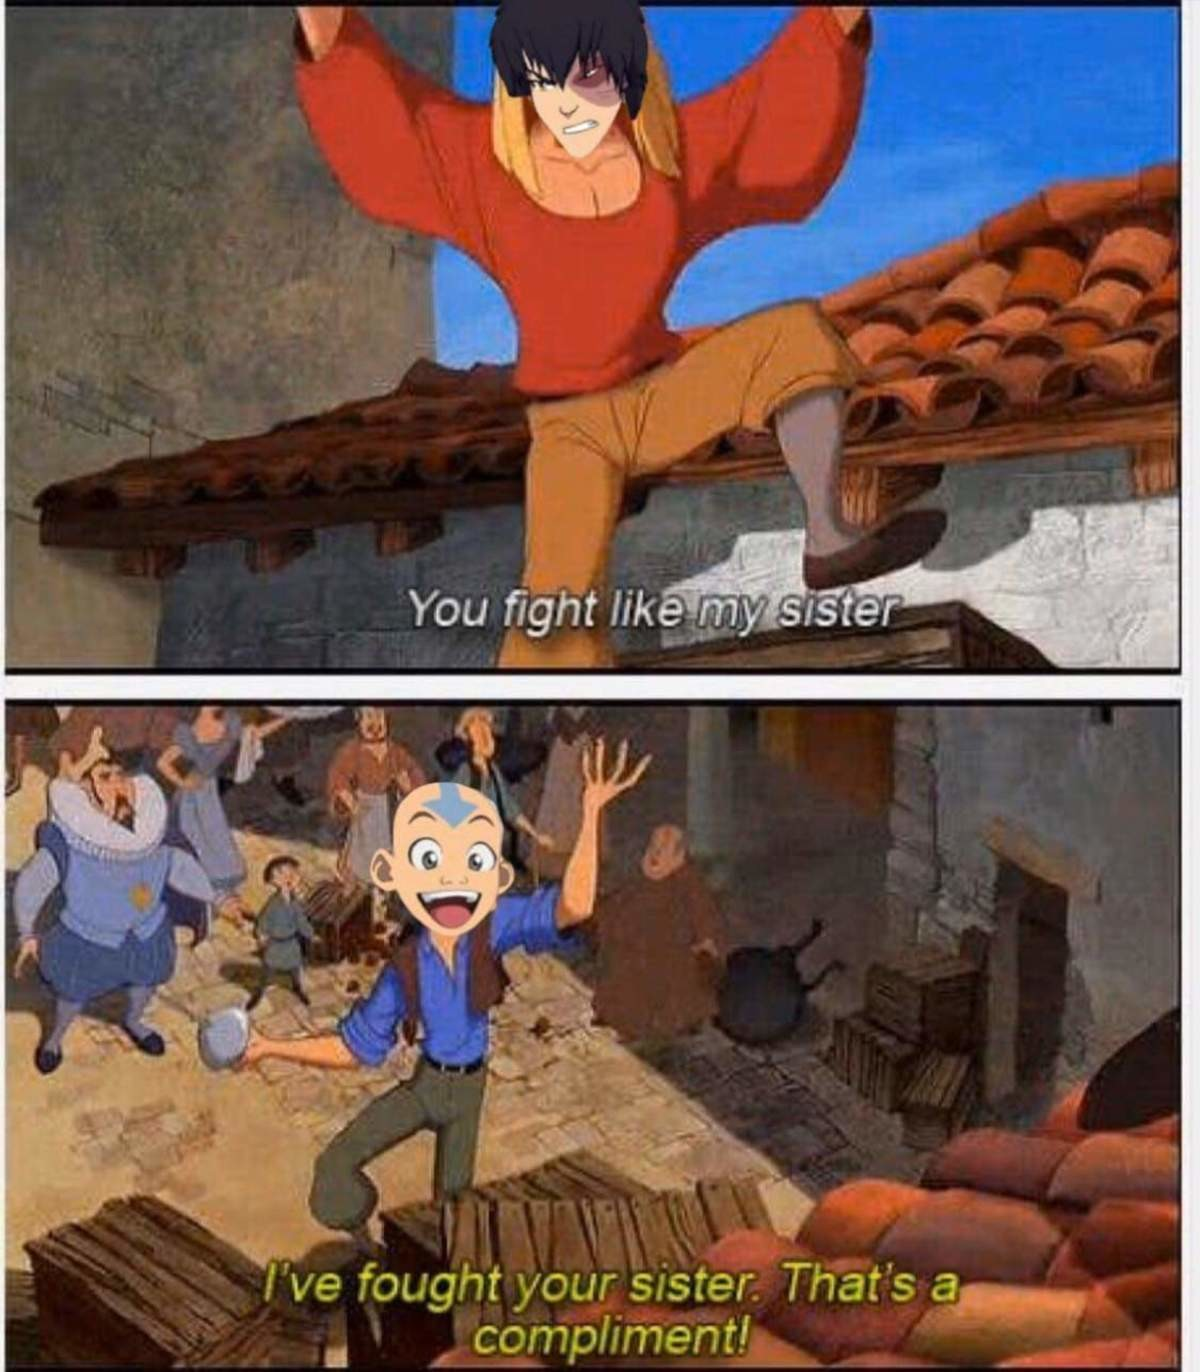 sister. .. Aang and Azula's styles could not be more diametrically opposed though.